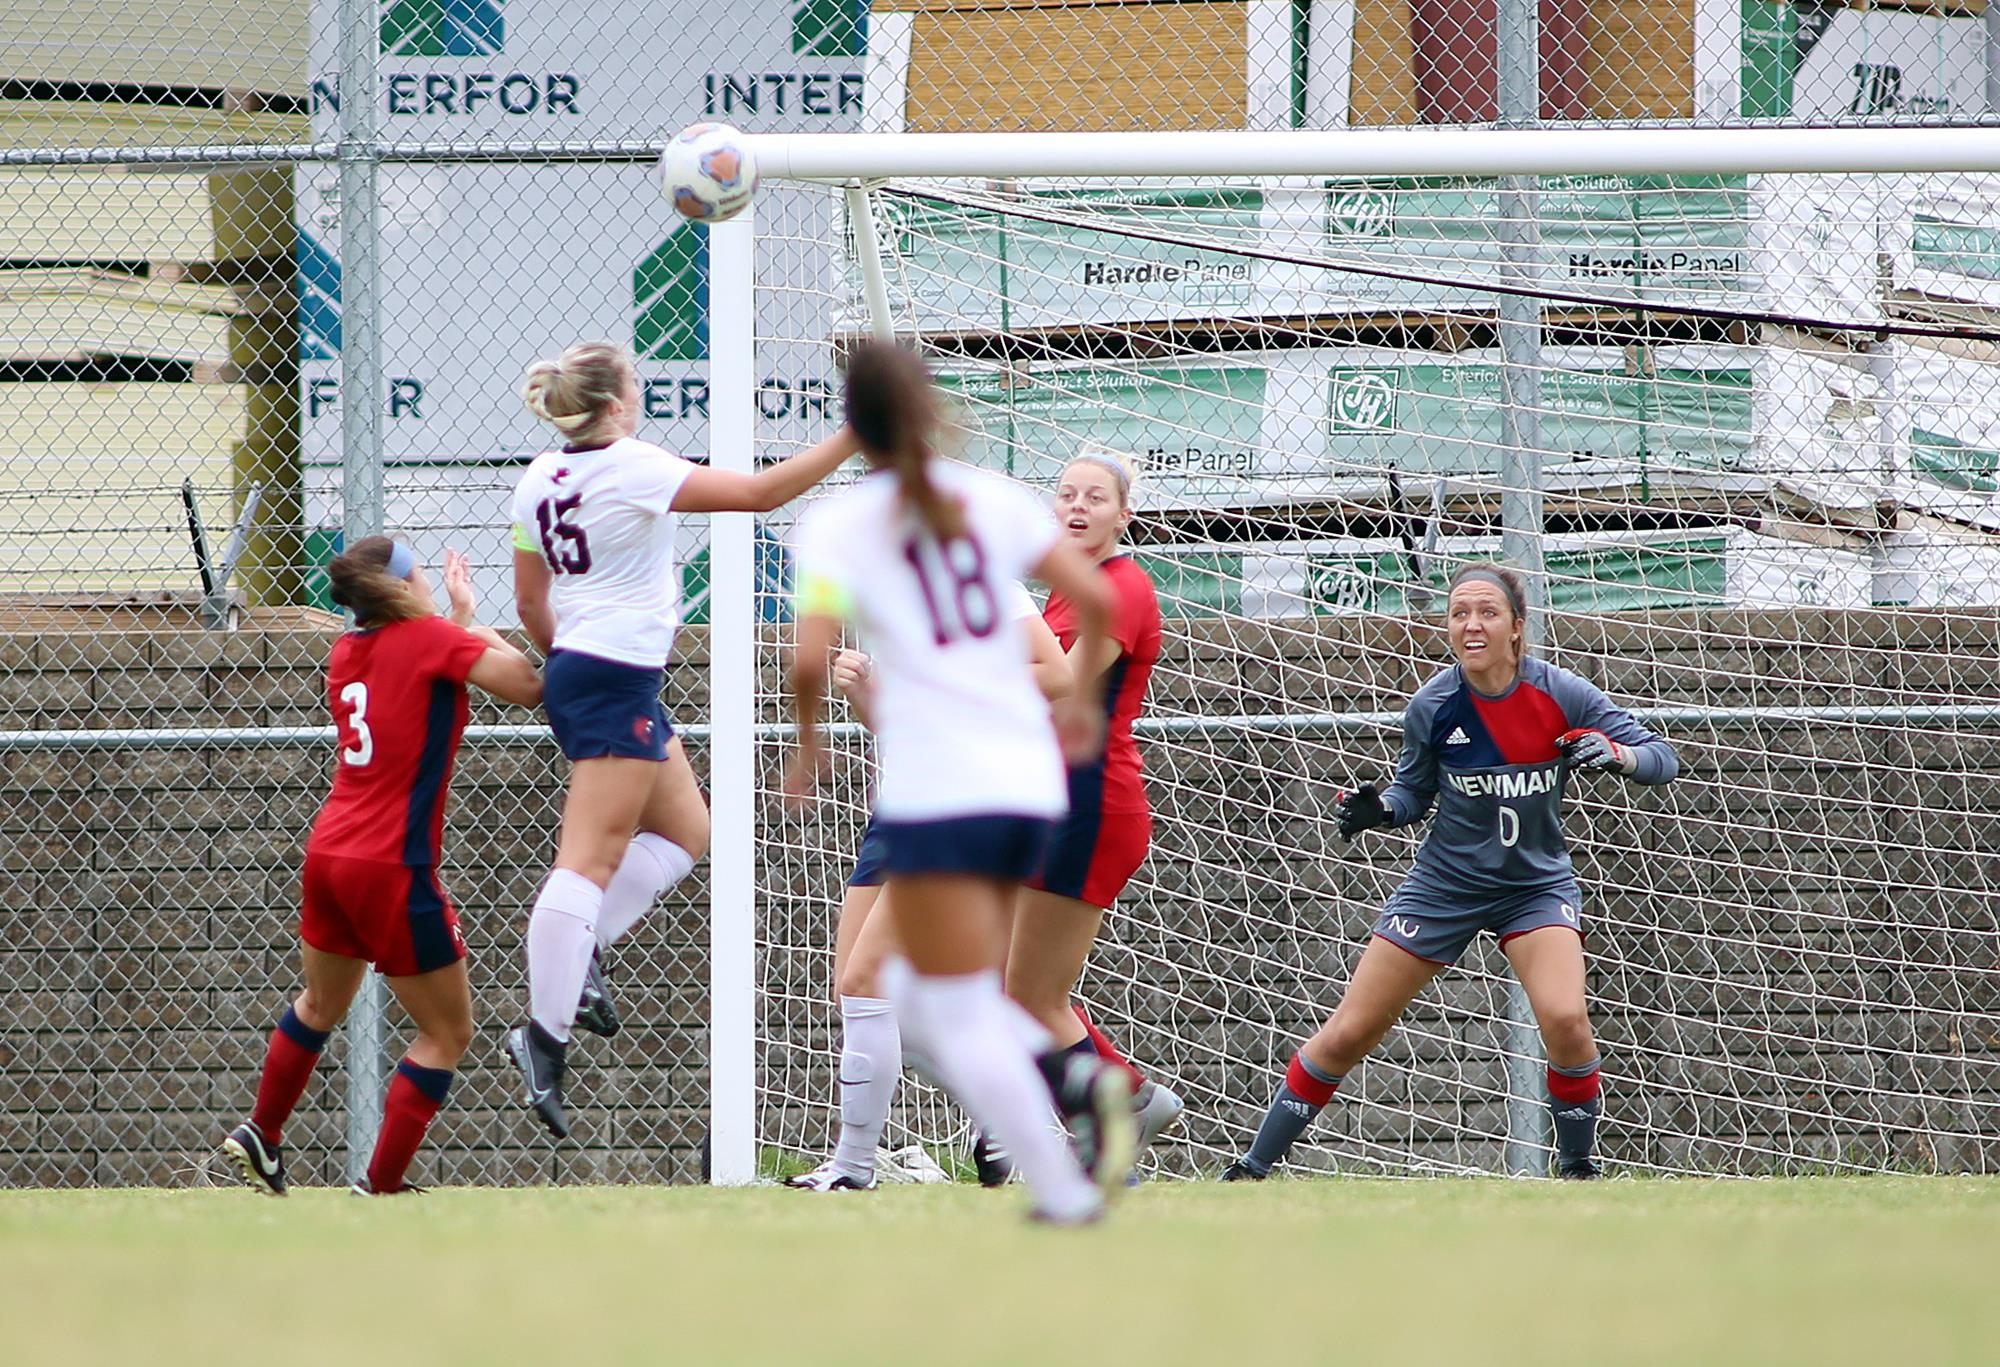 Women's soccer goalie scores MIAA goalie of the week